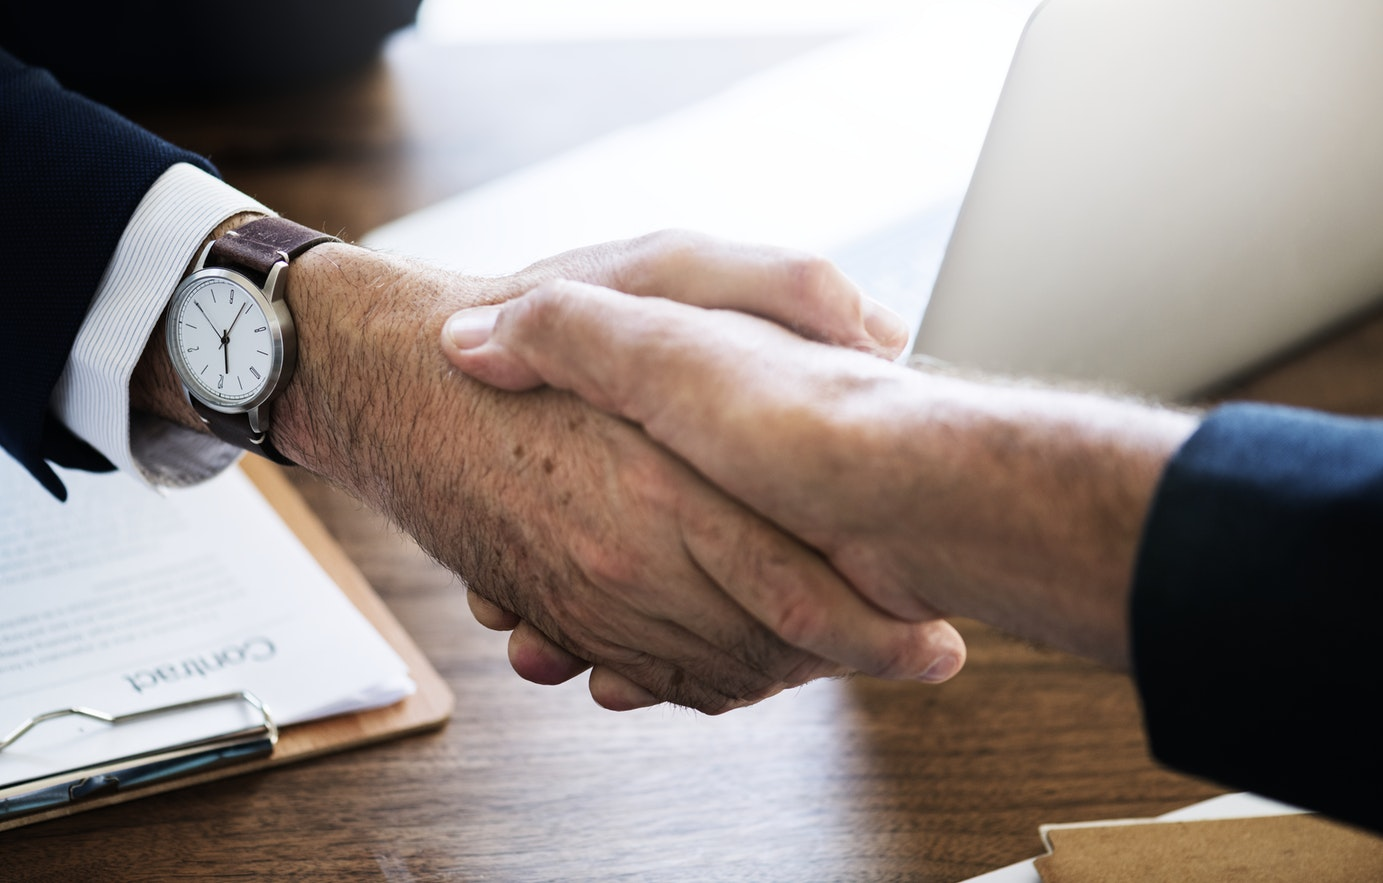 How The Integrated CRM System With E-Signatures Can Benefit Your Business